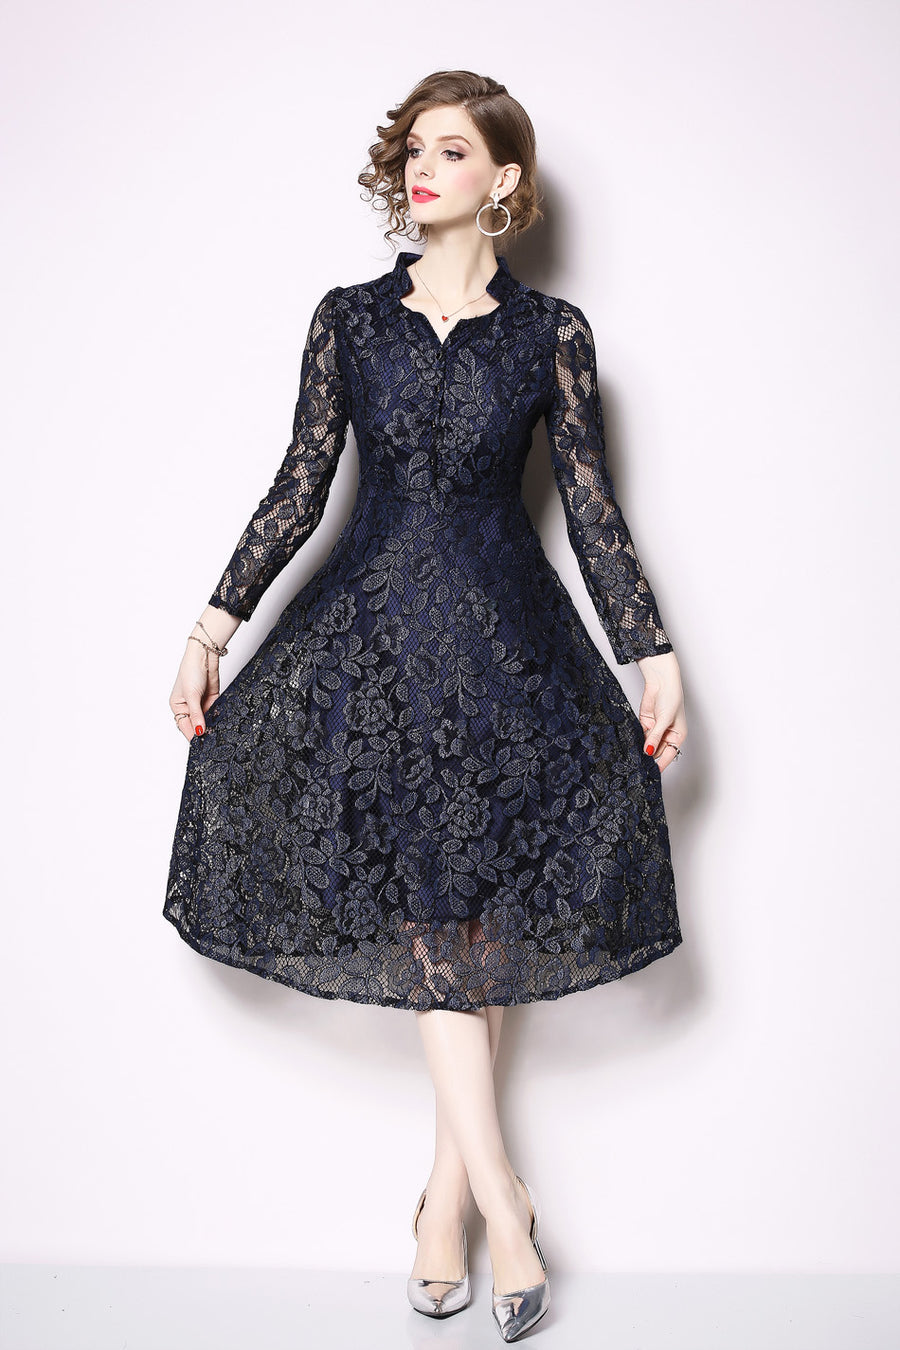 Blue Lace Floral Hollow Out Long Sleeve Midi Dress with Buttons Front